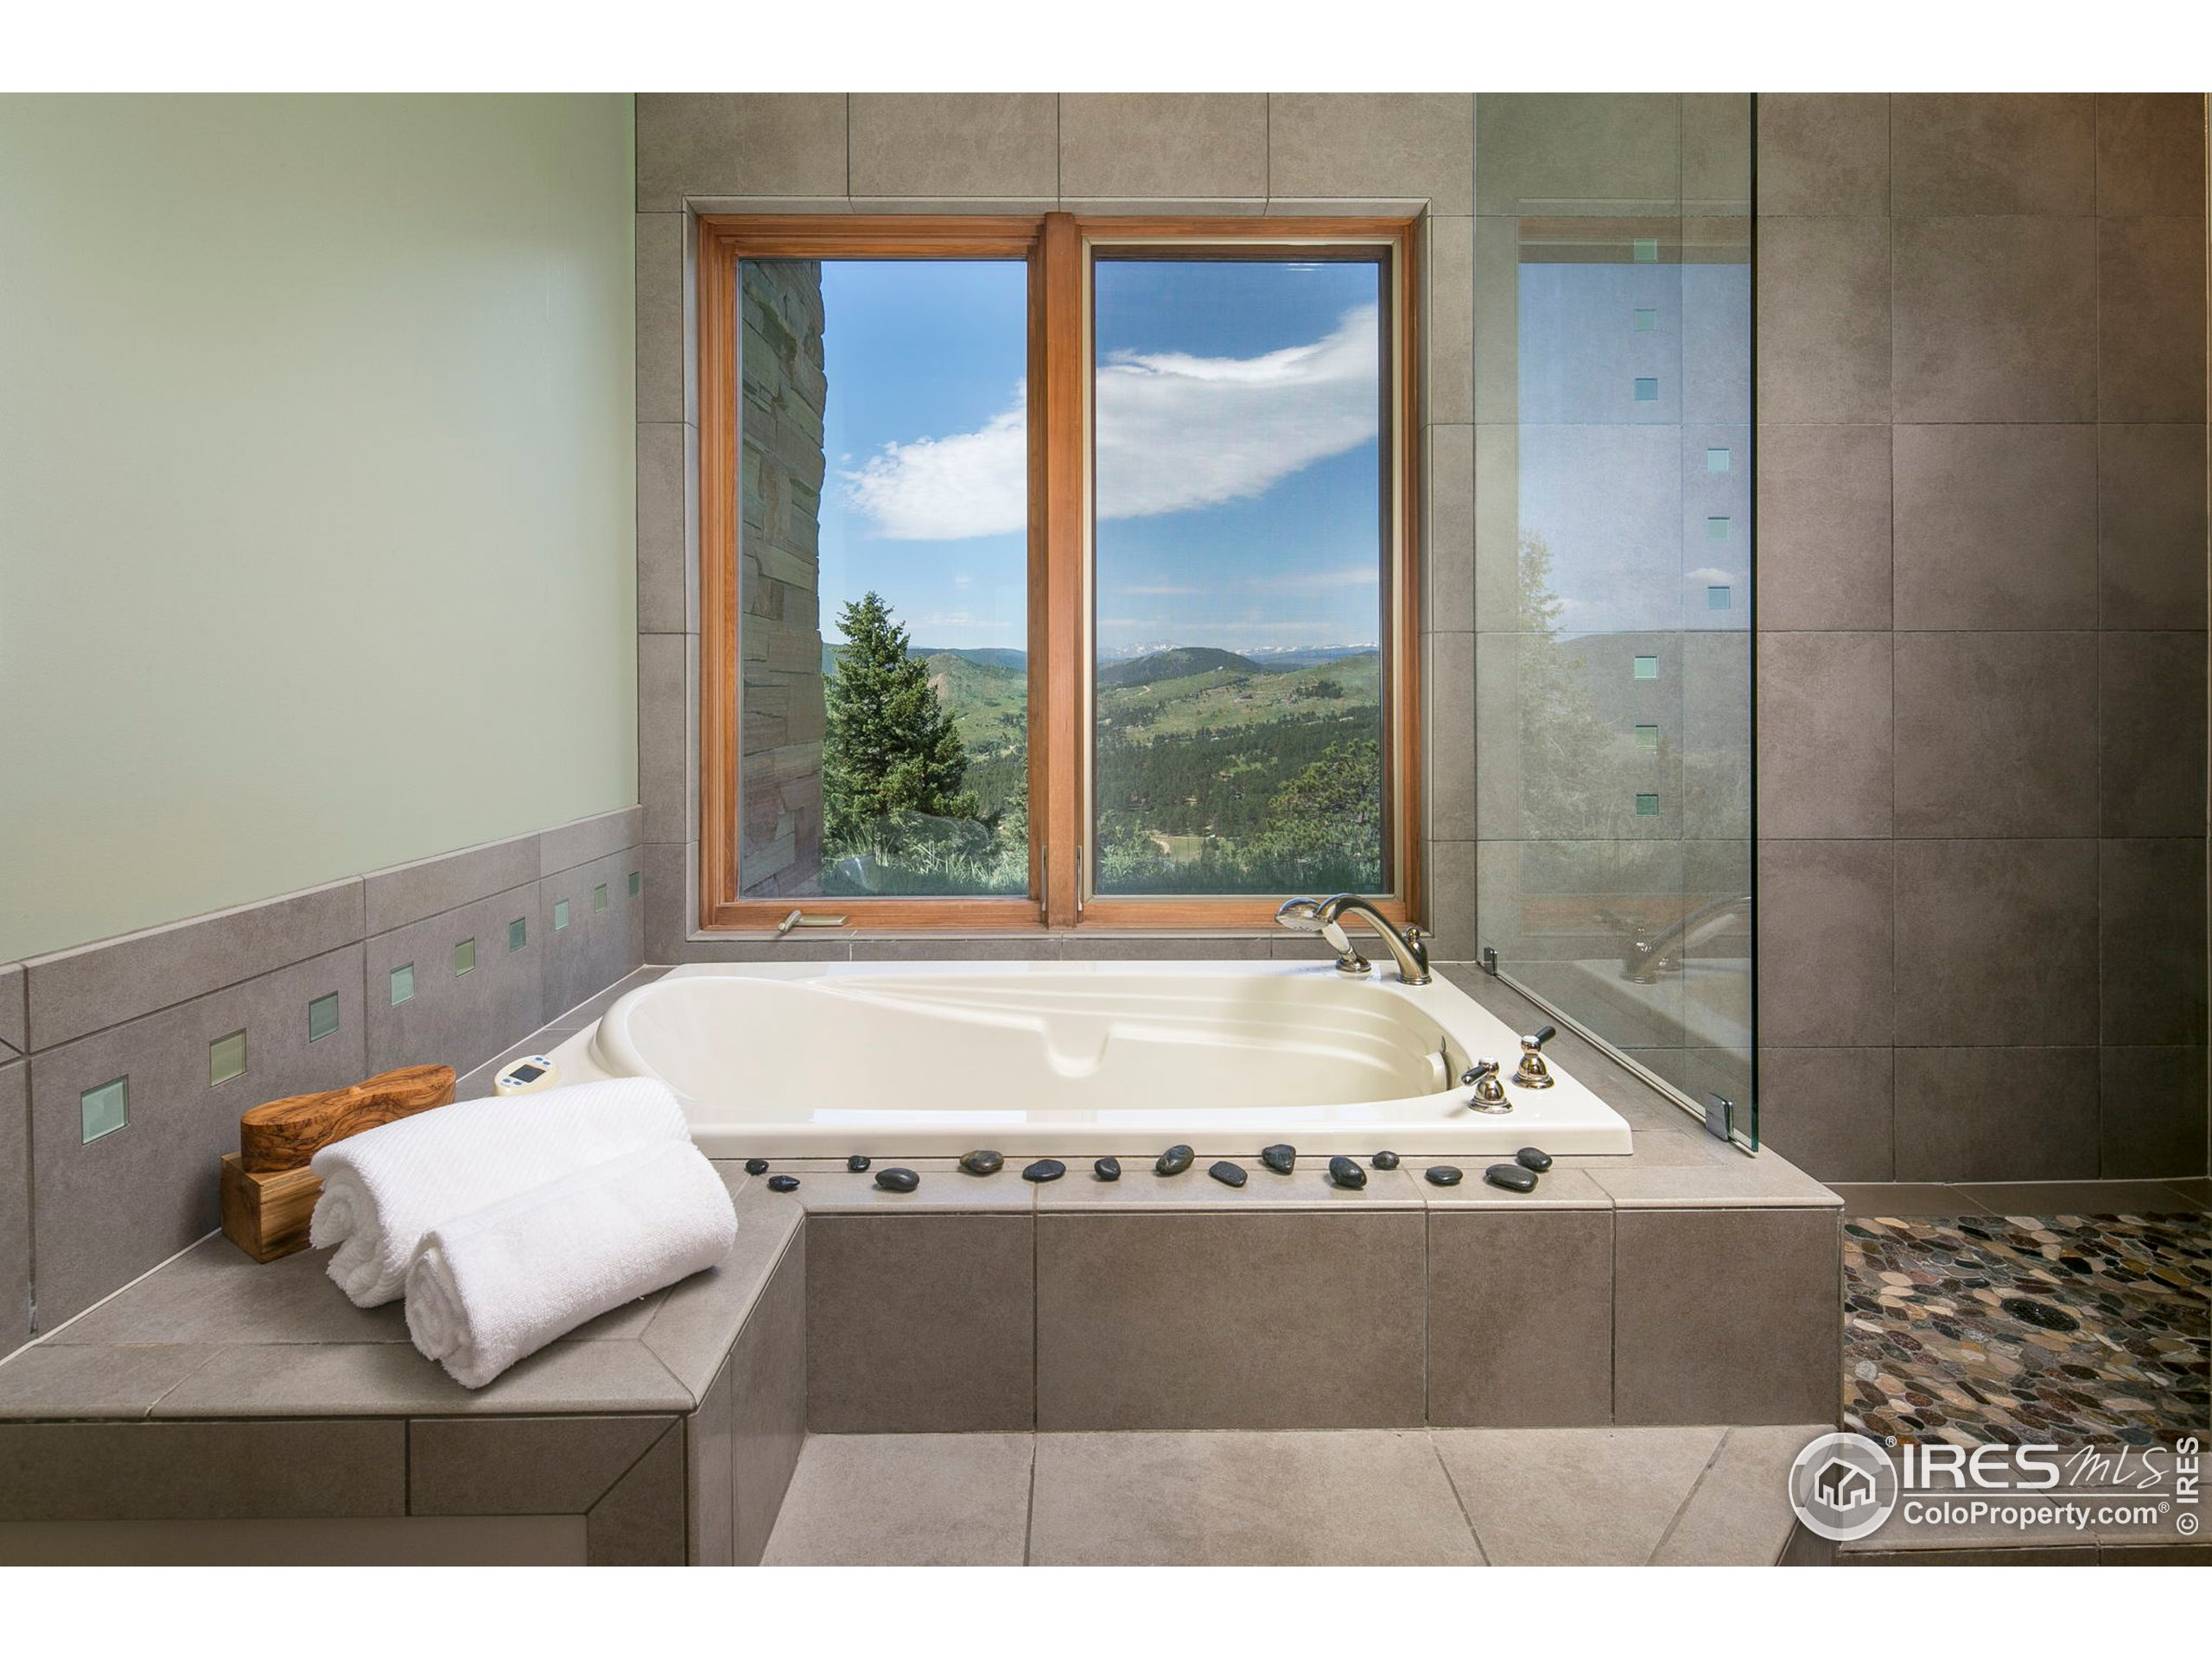 Soaking tub with endless views! No need for window coverings here!